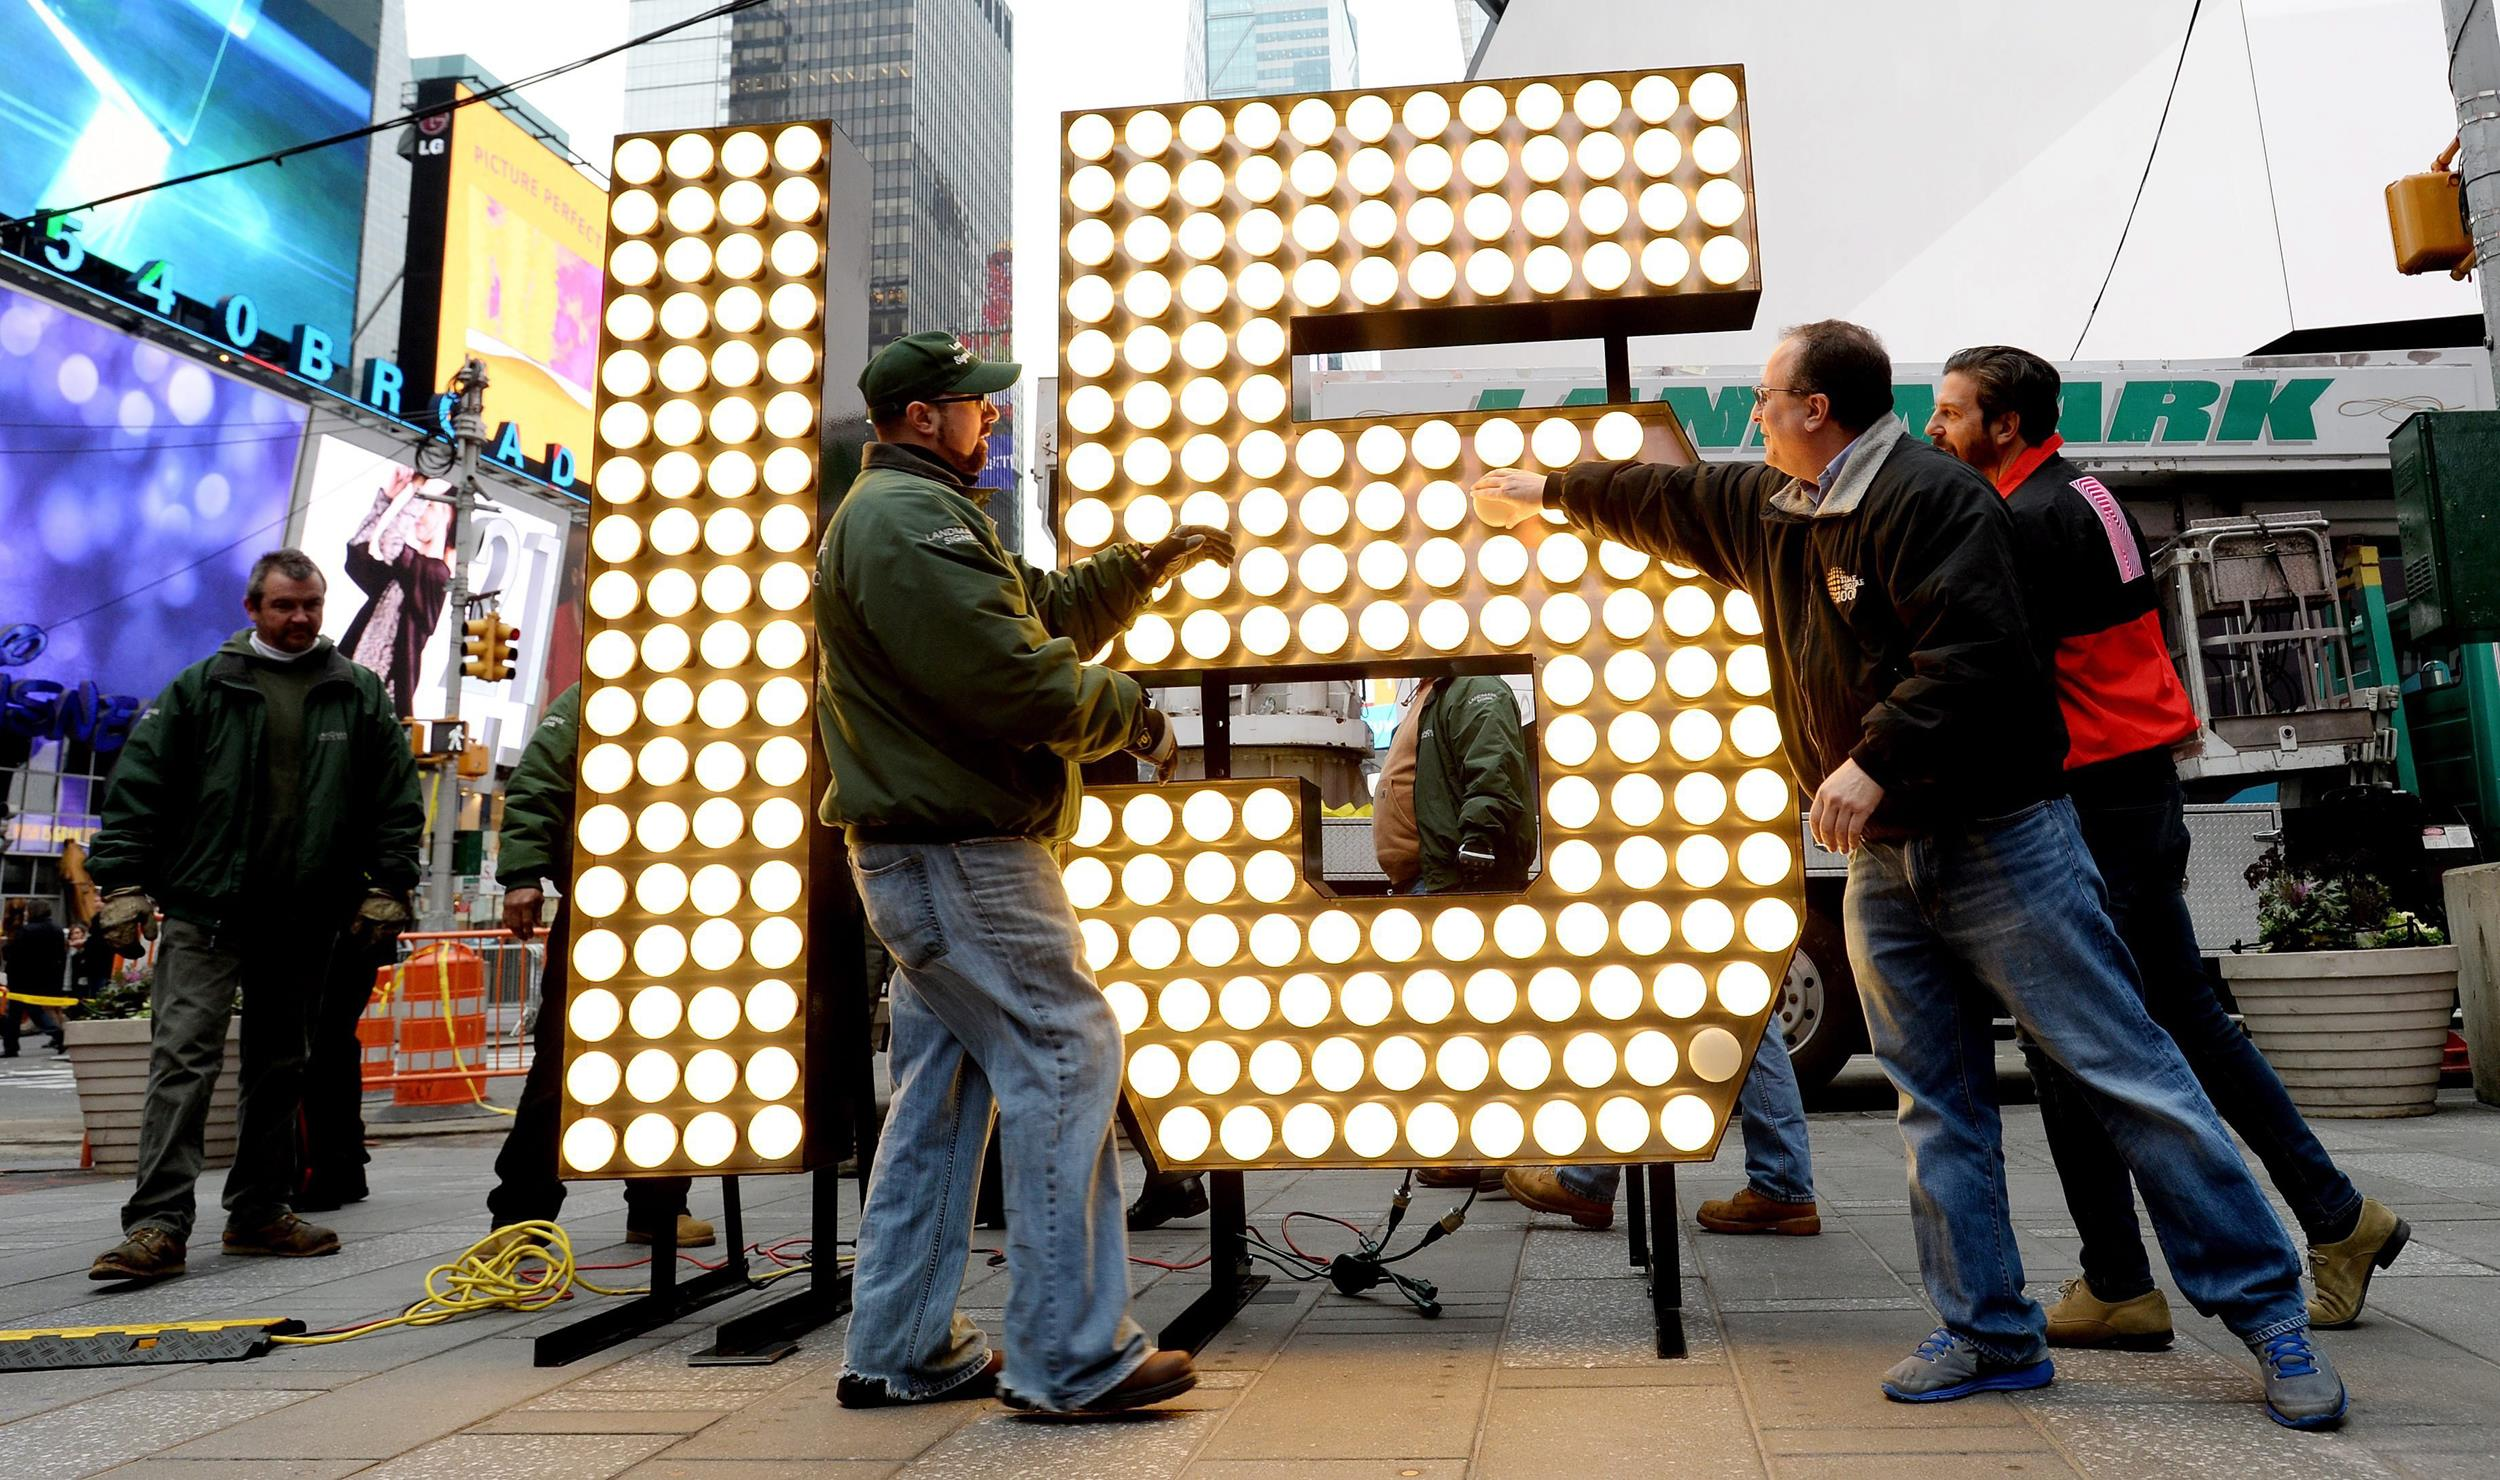 Sign Of The New Year Numerals Arrive In Times Square